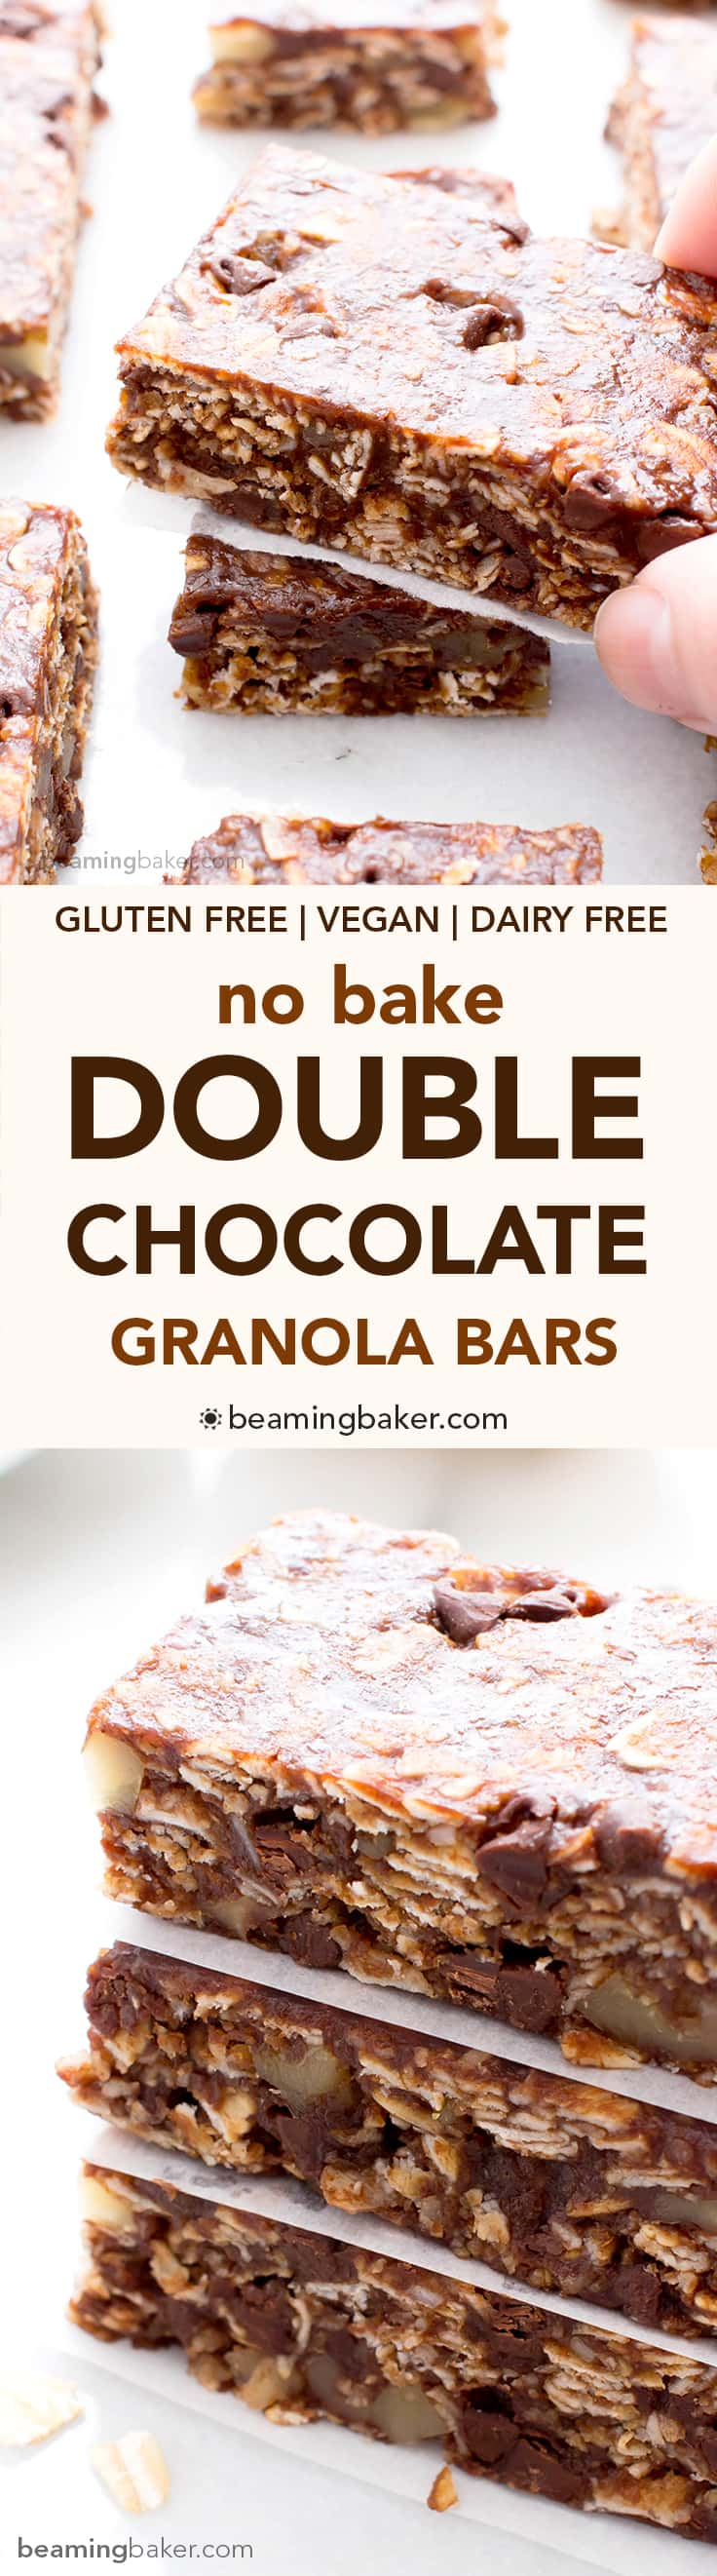 No Bake Double Chocolate Chip Granola Bars (V+GF): an easy recipe for deliciously chewy double chocolate granola bars made with simple ingredients. #Vegan #GlutenFree #DairyFree | BeamingBaker.com